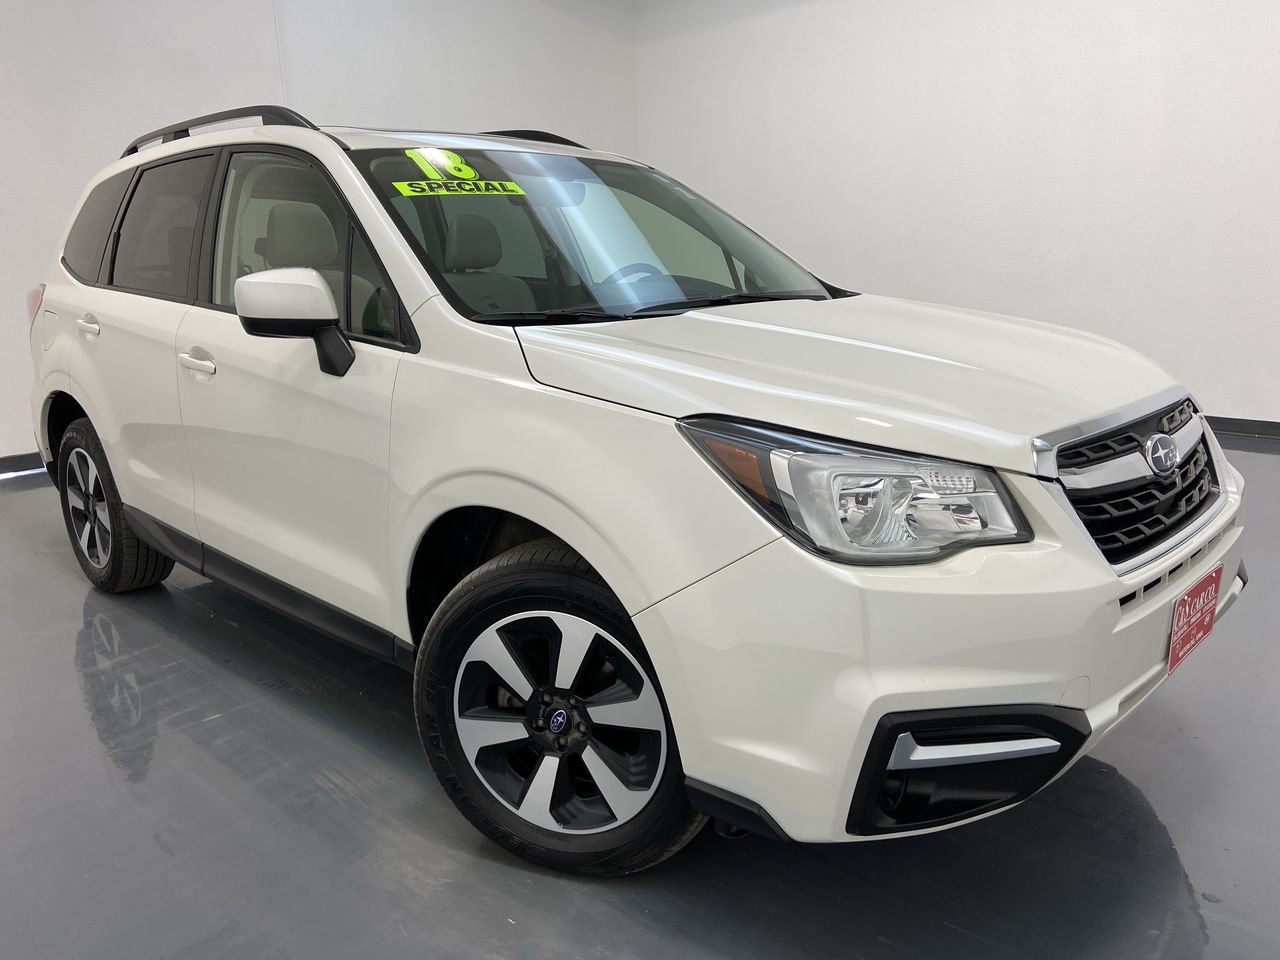 2018 Subaru Forester 4D SUV at  - SB9107A  - C & S Car Company